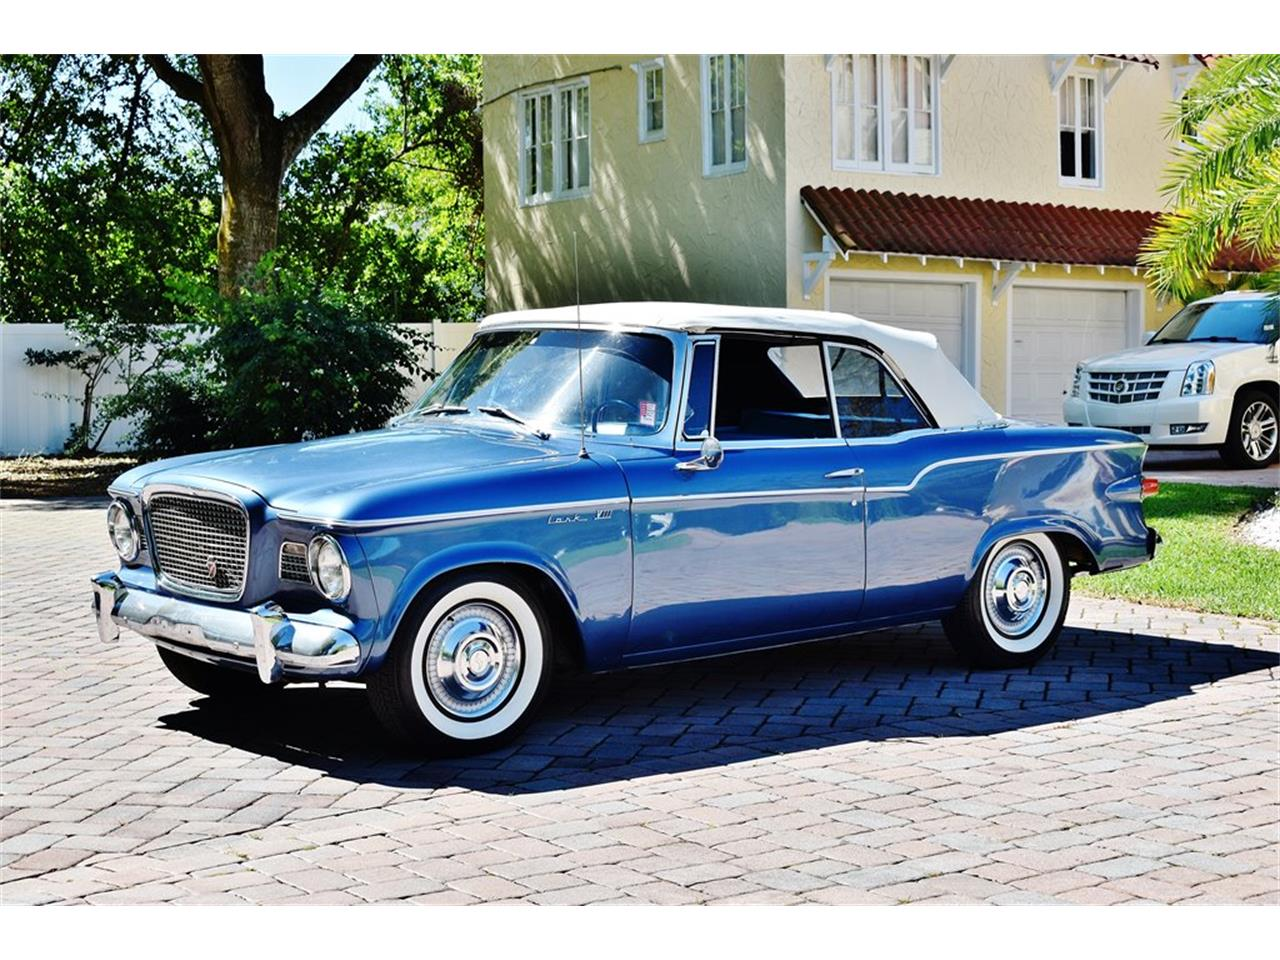 1960 Studebaker Lark for sale in Lakeland, FL – photo 2